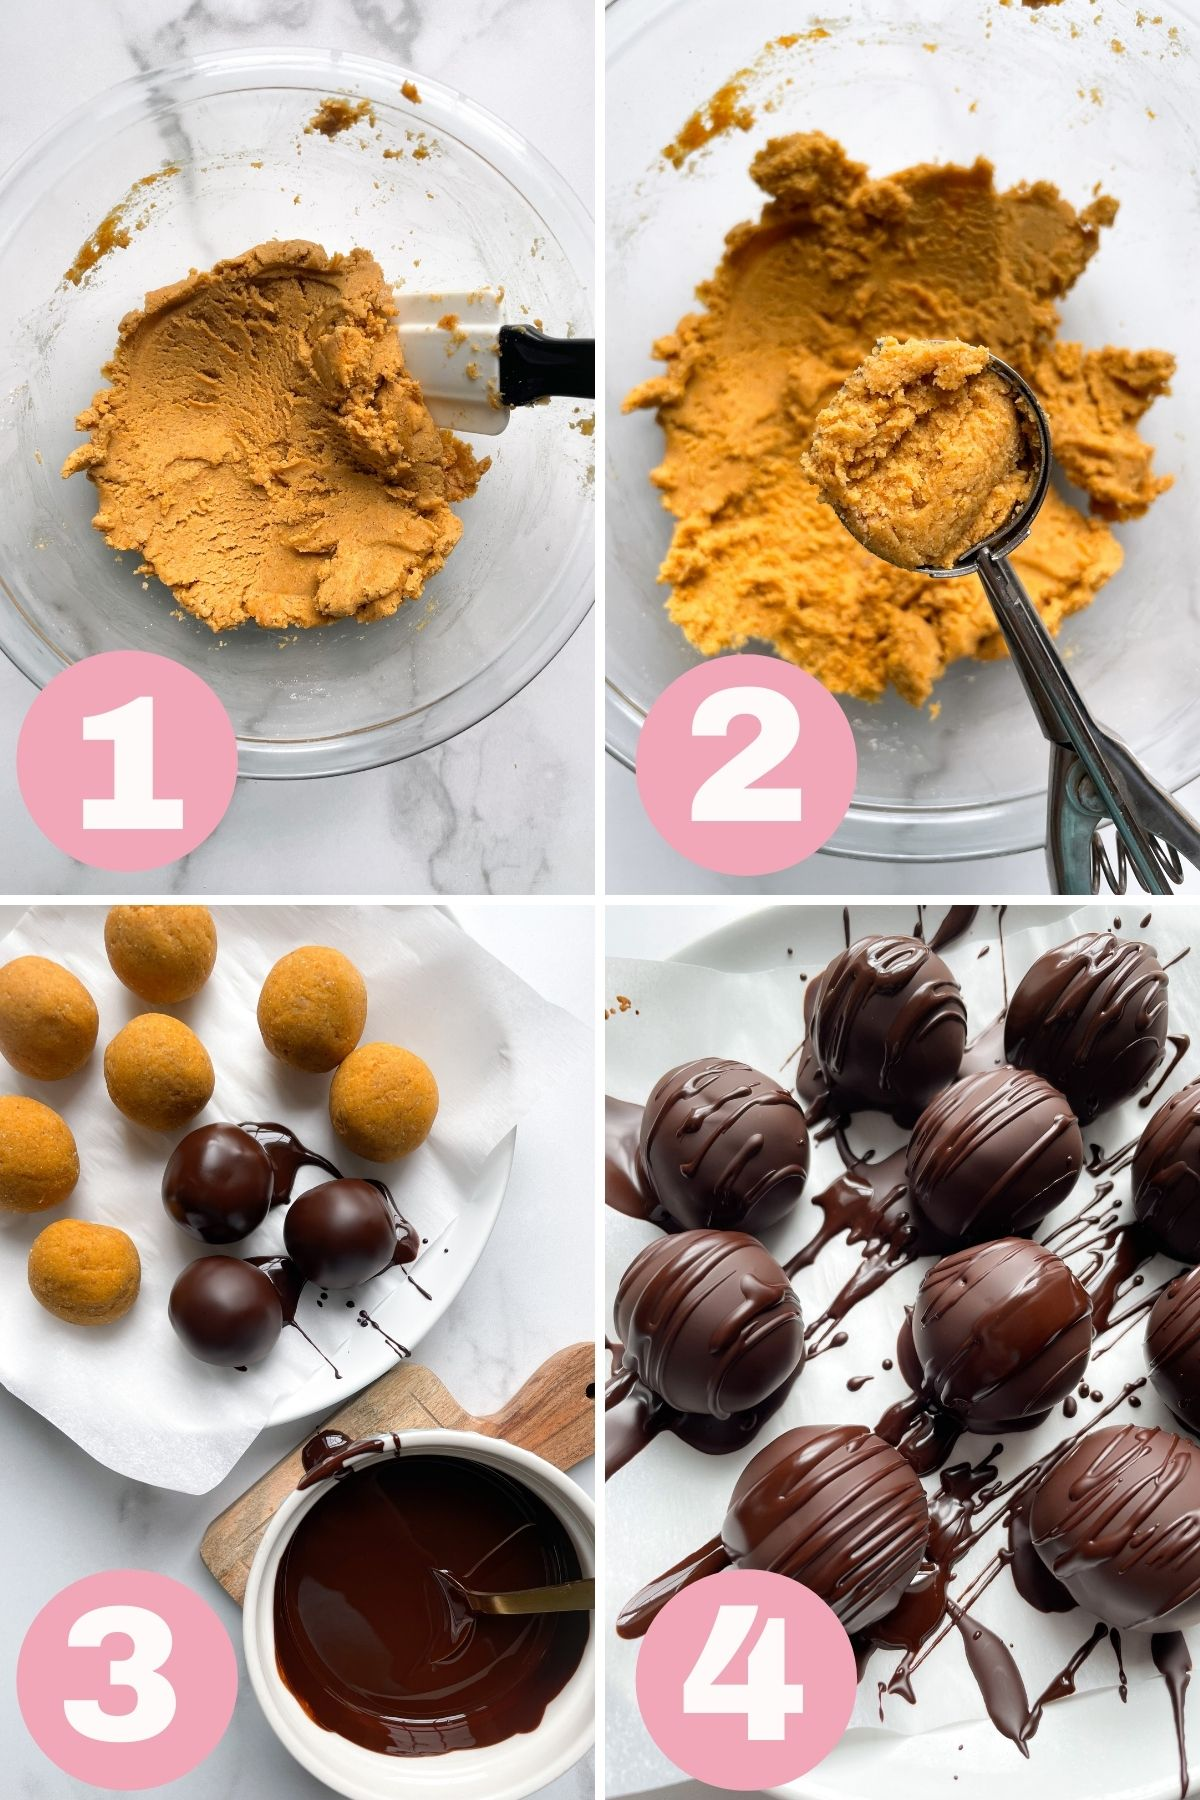 4 photo collage showing how to make truffles